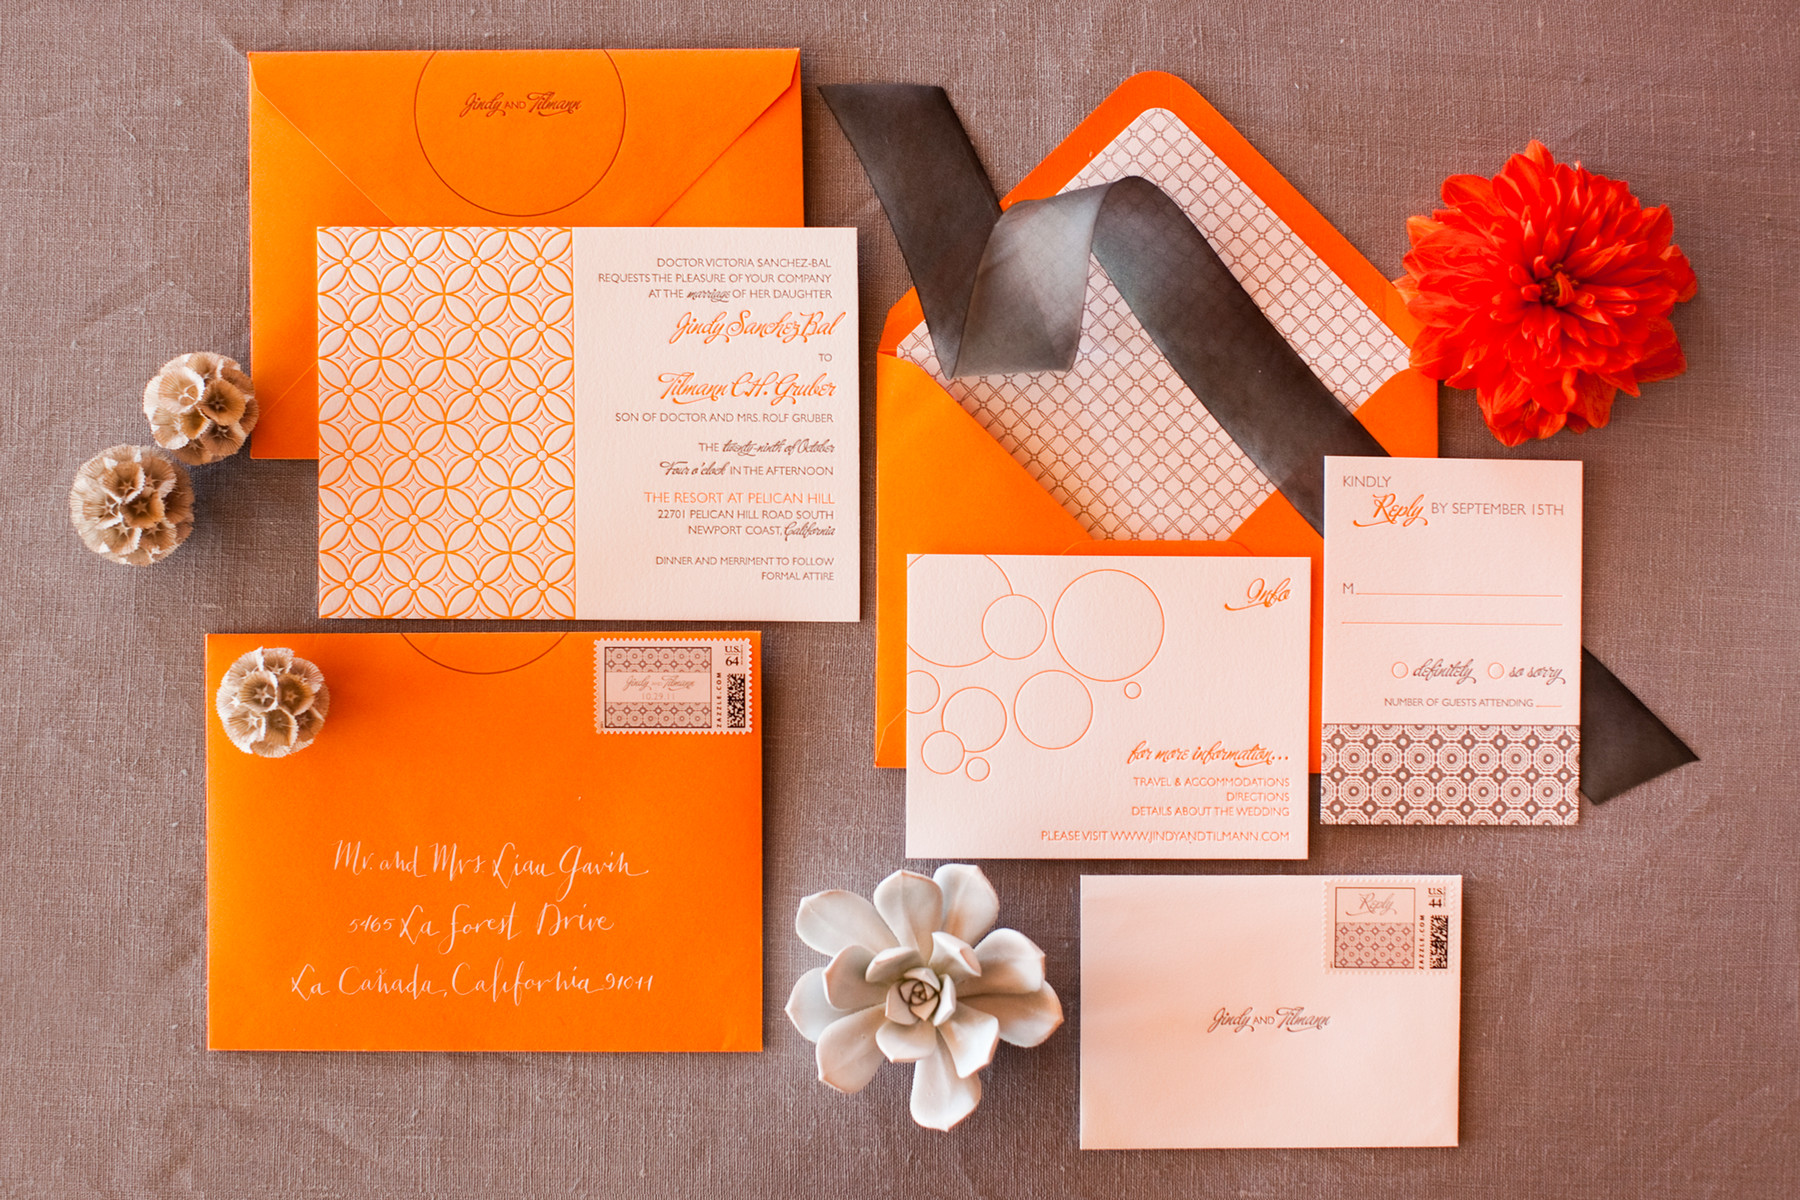 Modern organe wedding invitations with geometric designs - photo by John and Joseph Photography